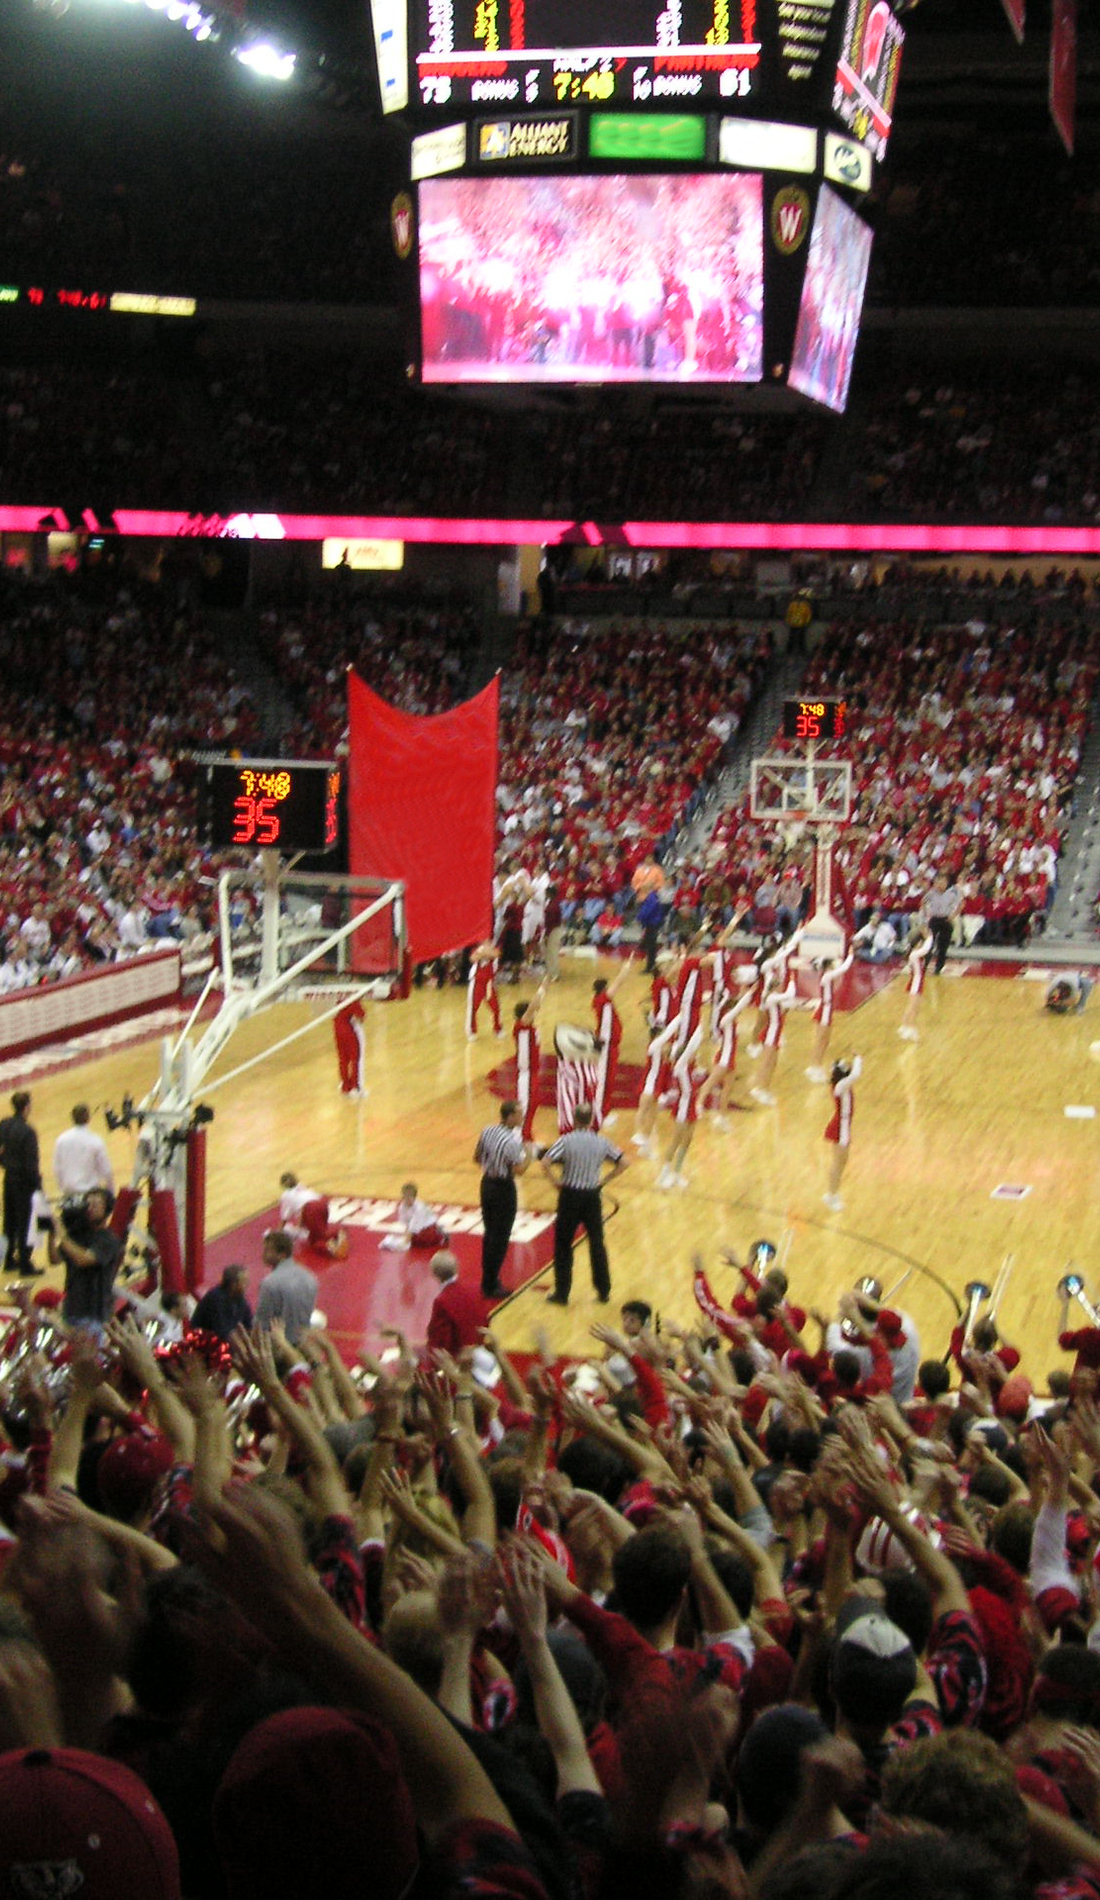 A Wisconsin Badgers Basketball live event